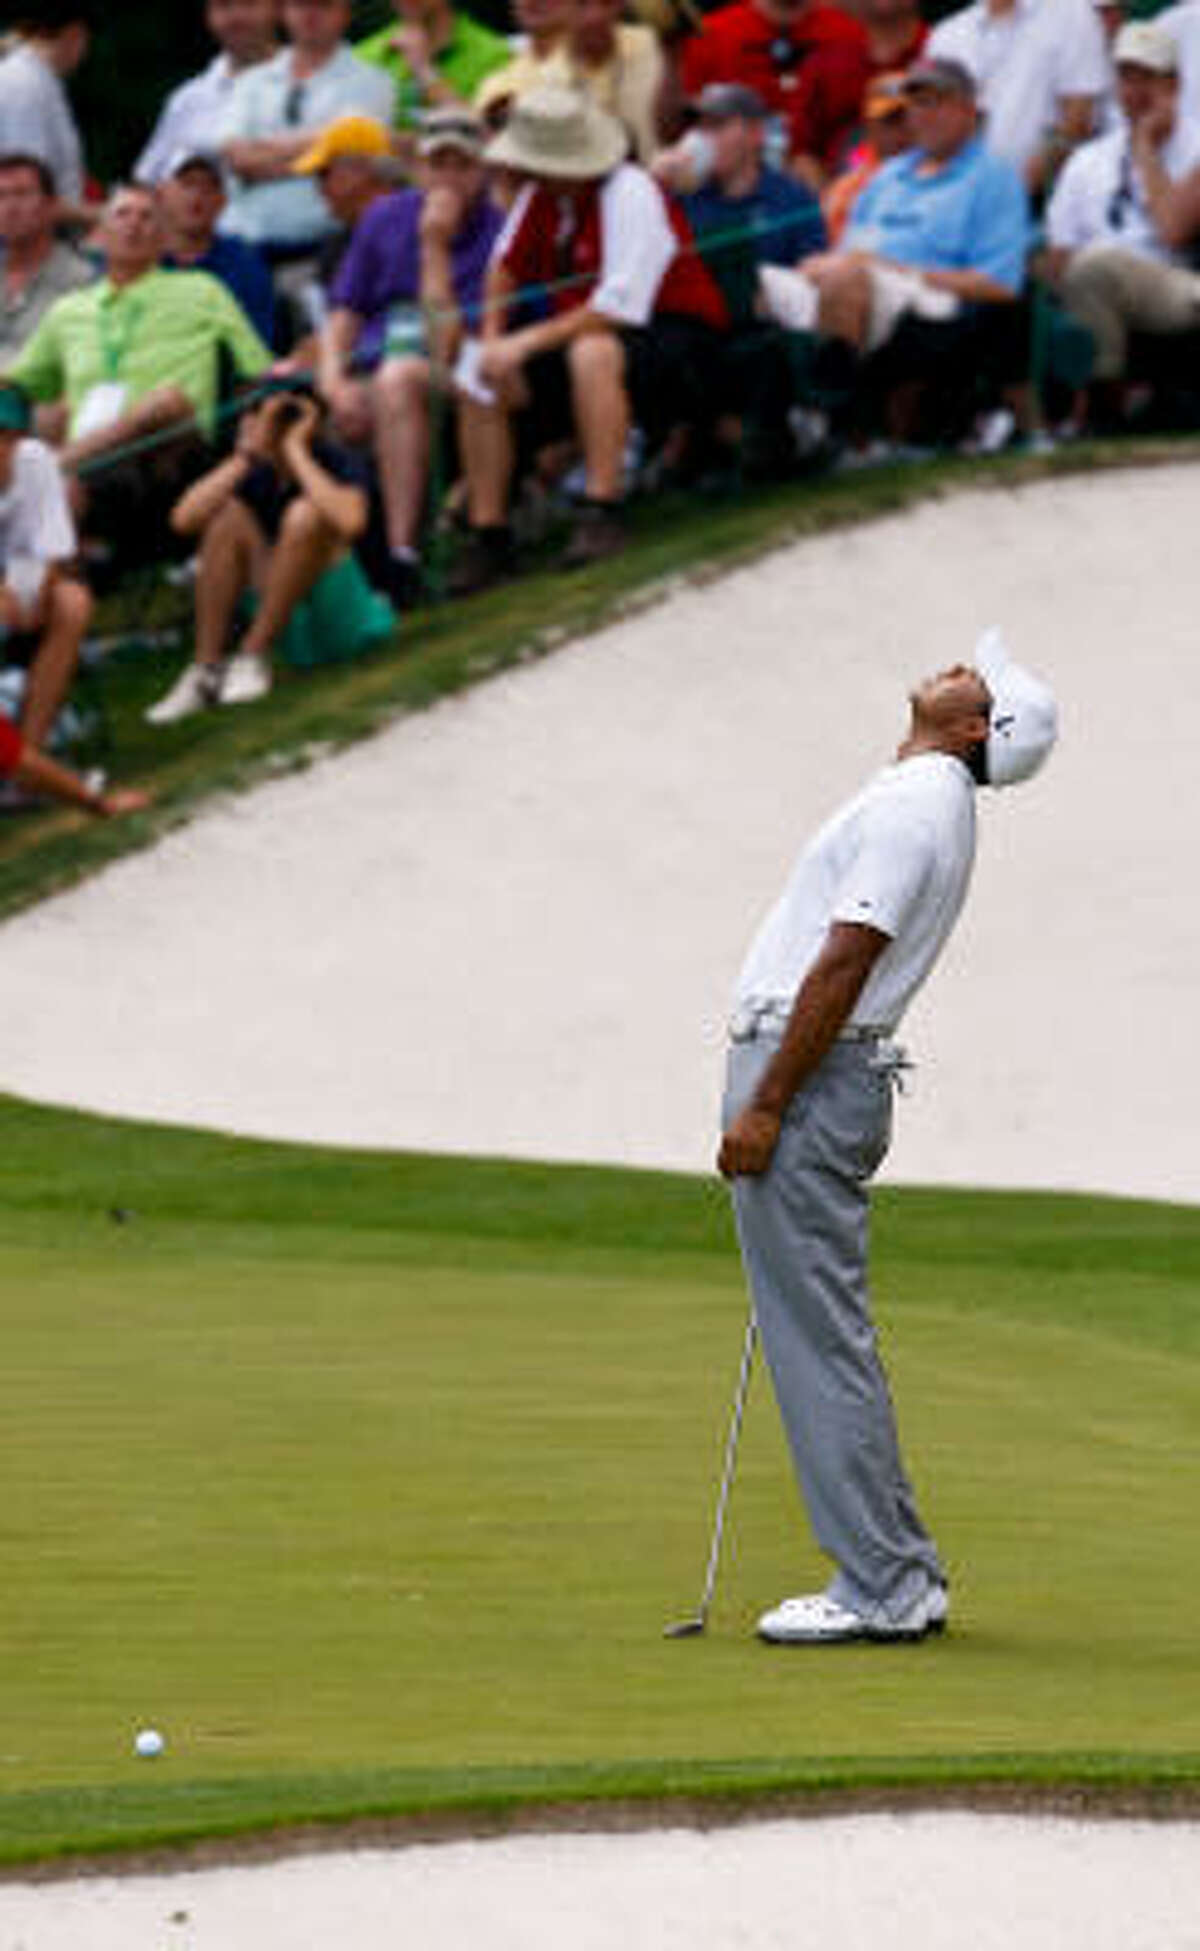 Tiger Woods misses a short birdie putt on the 16th green during the second round.